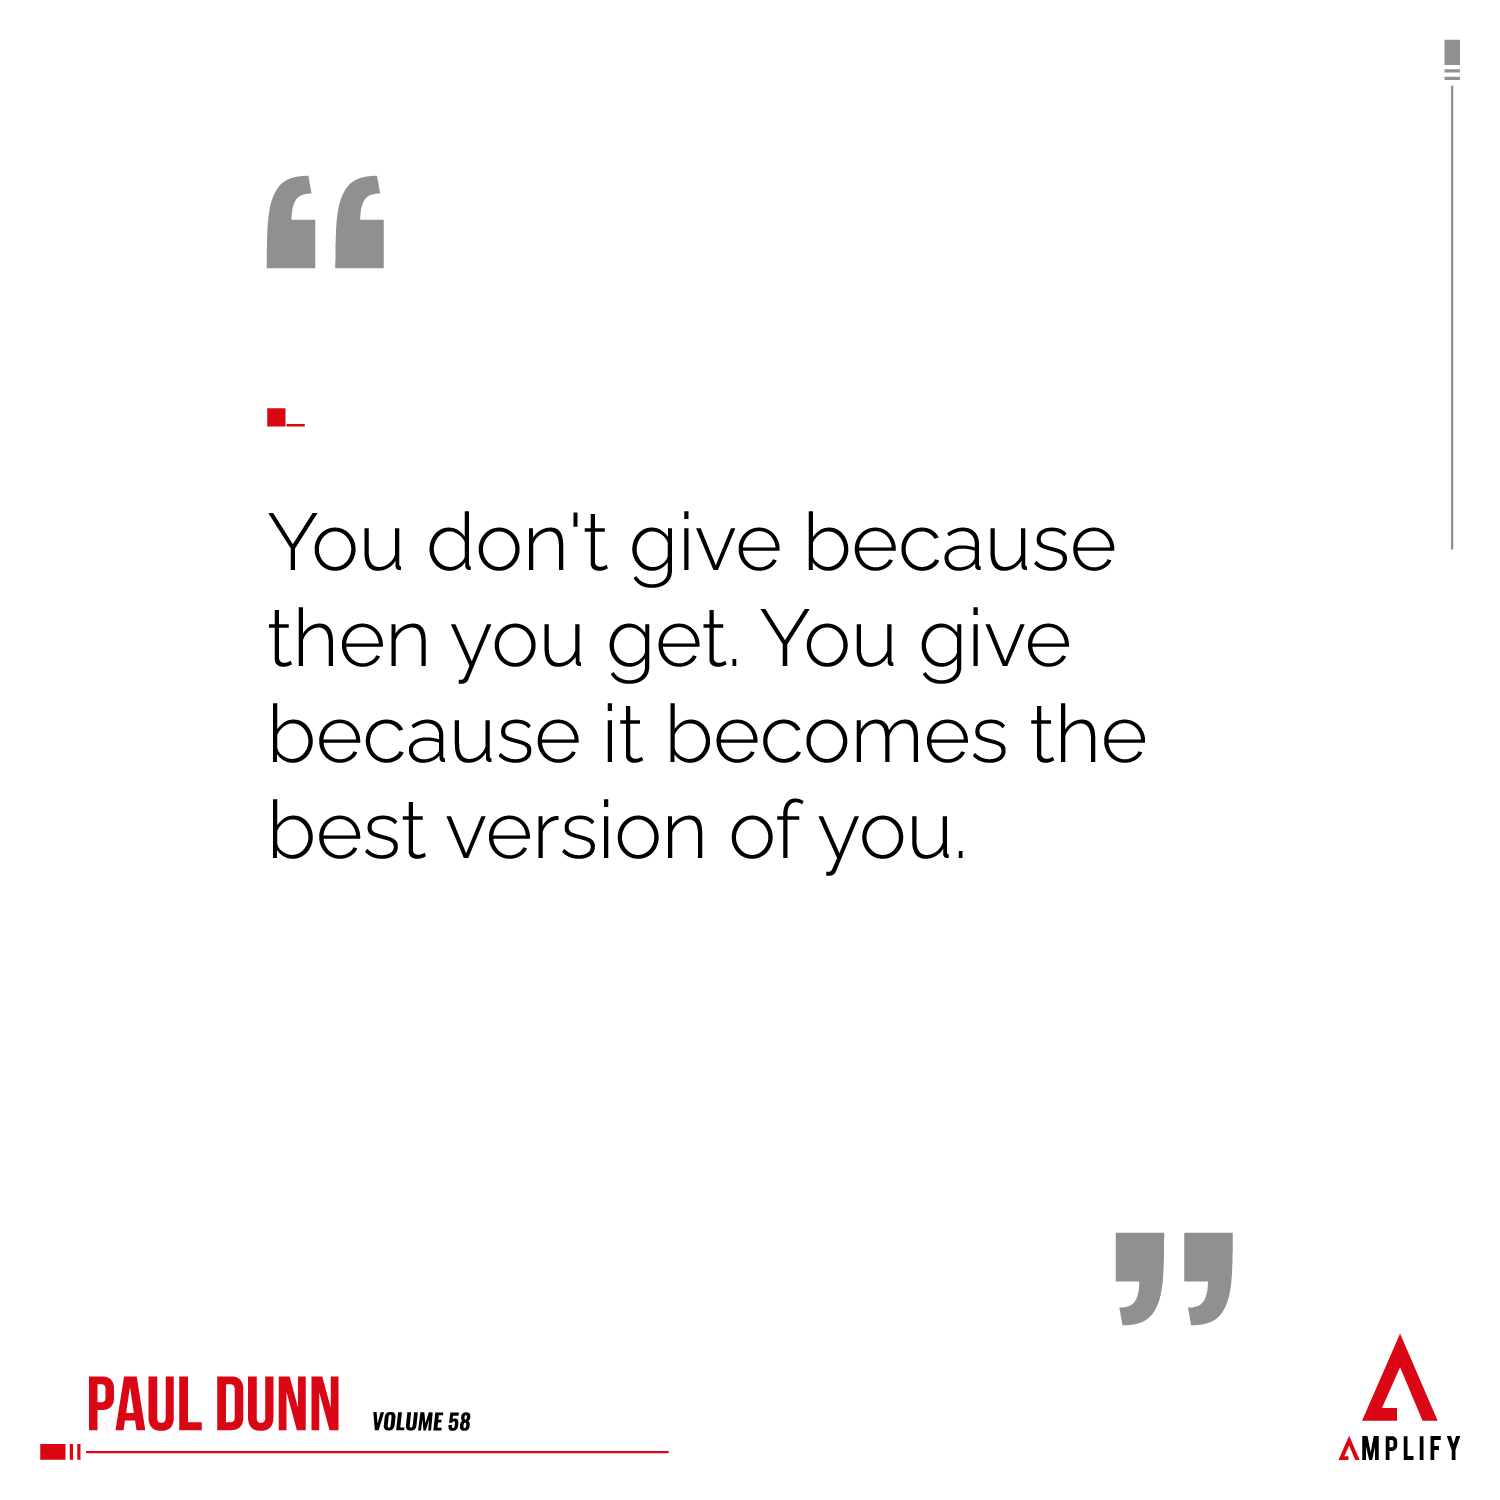 Quote: You don't give because then you get. You give because it becomes the best version of you.